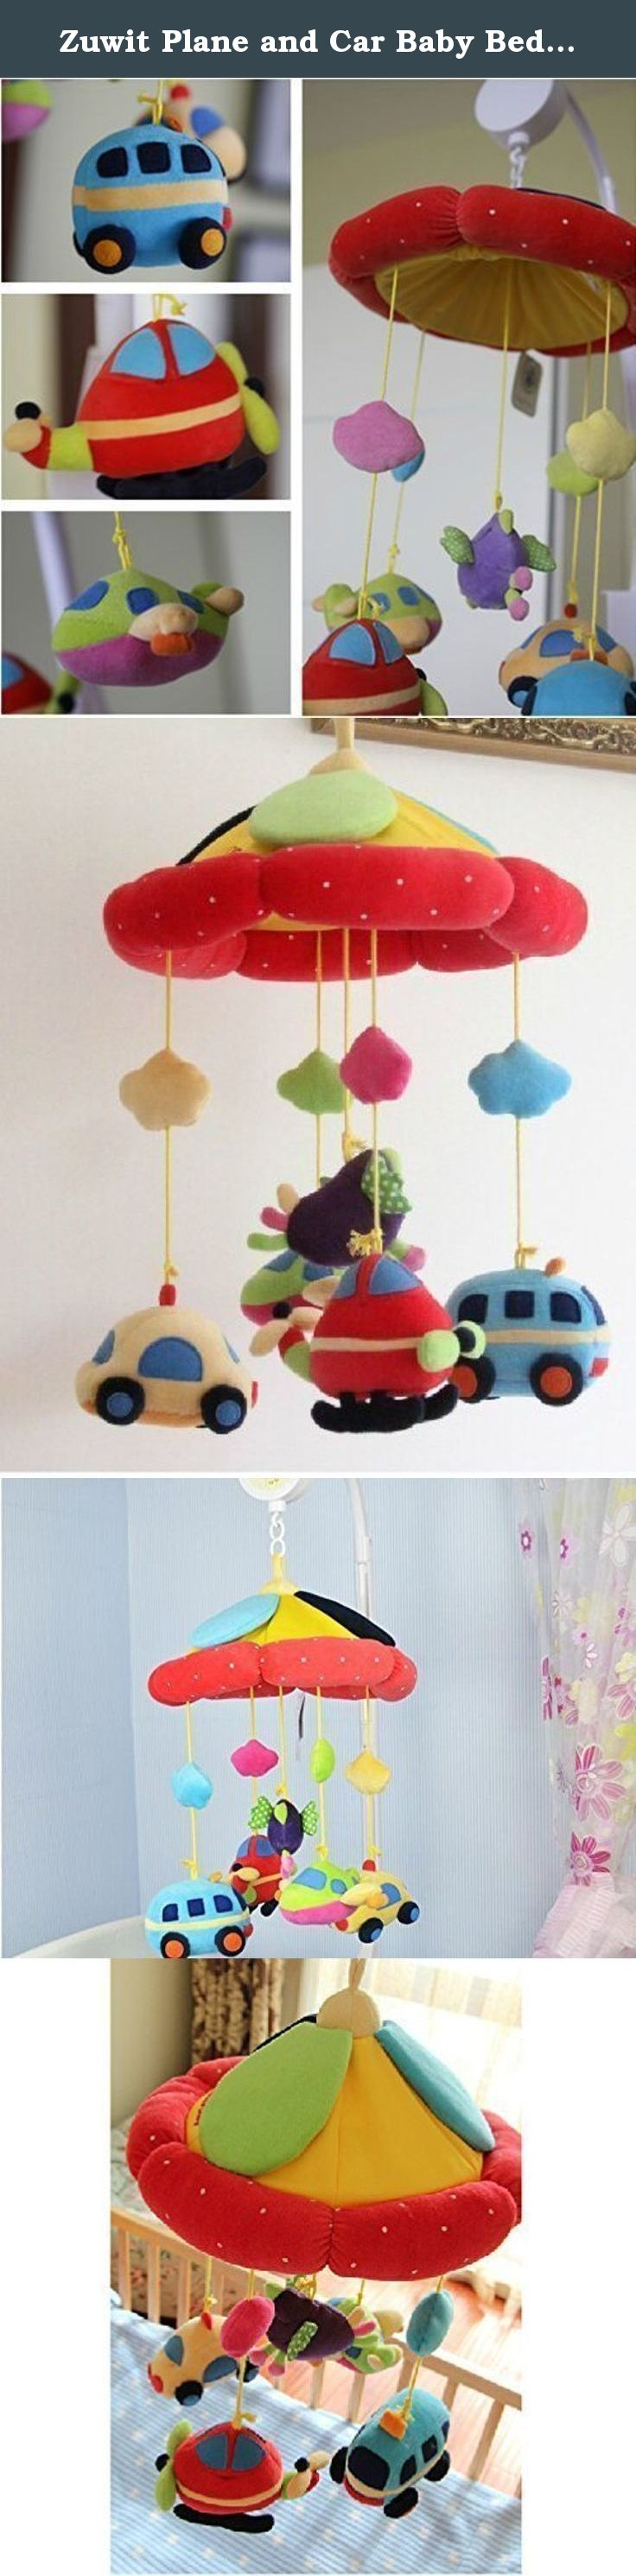 Best crib toys your baby - Zuwit Plane And Car Baby Bed Crib Musical Mobile Rotating Nursery Bell Electric Music Box 12